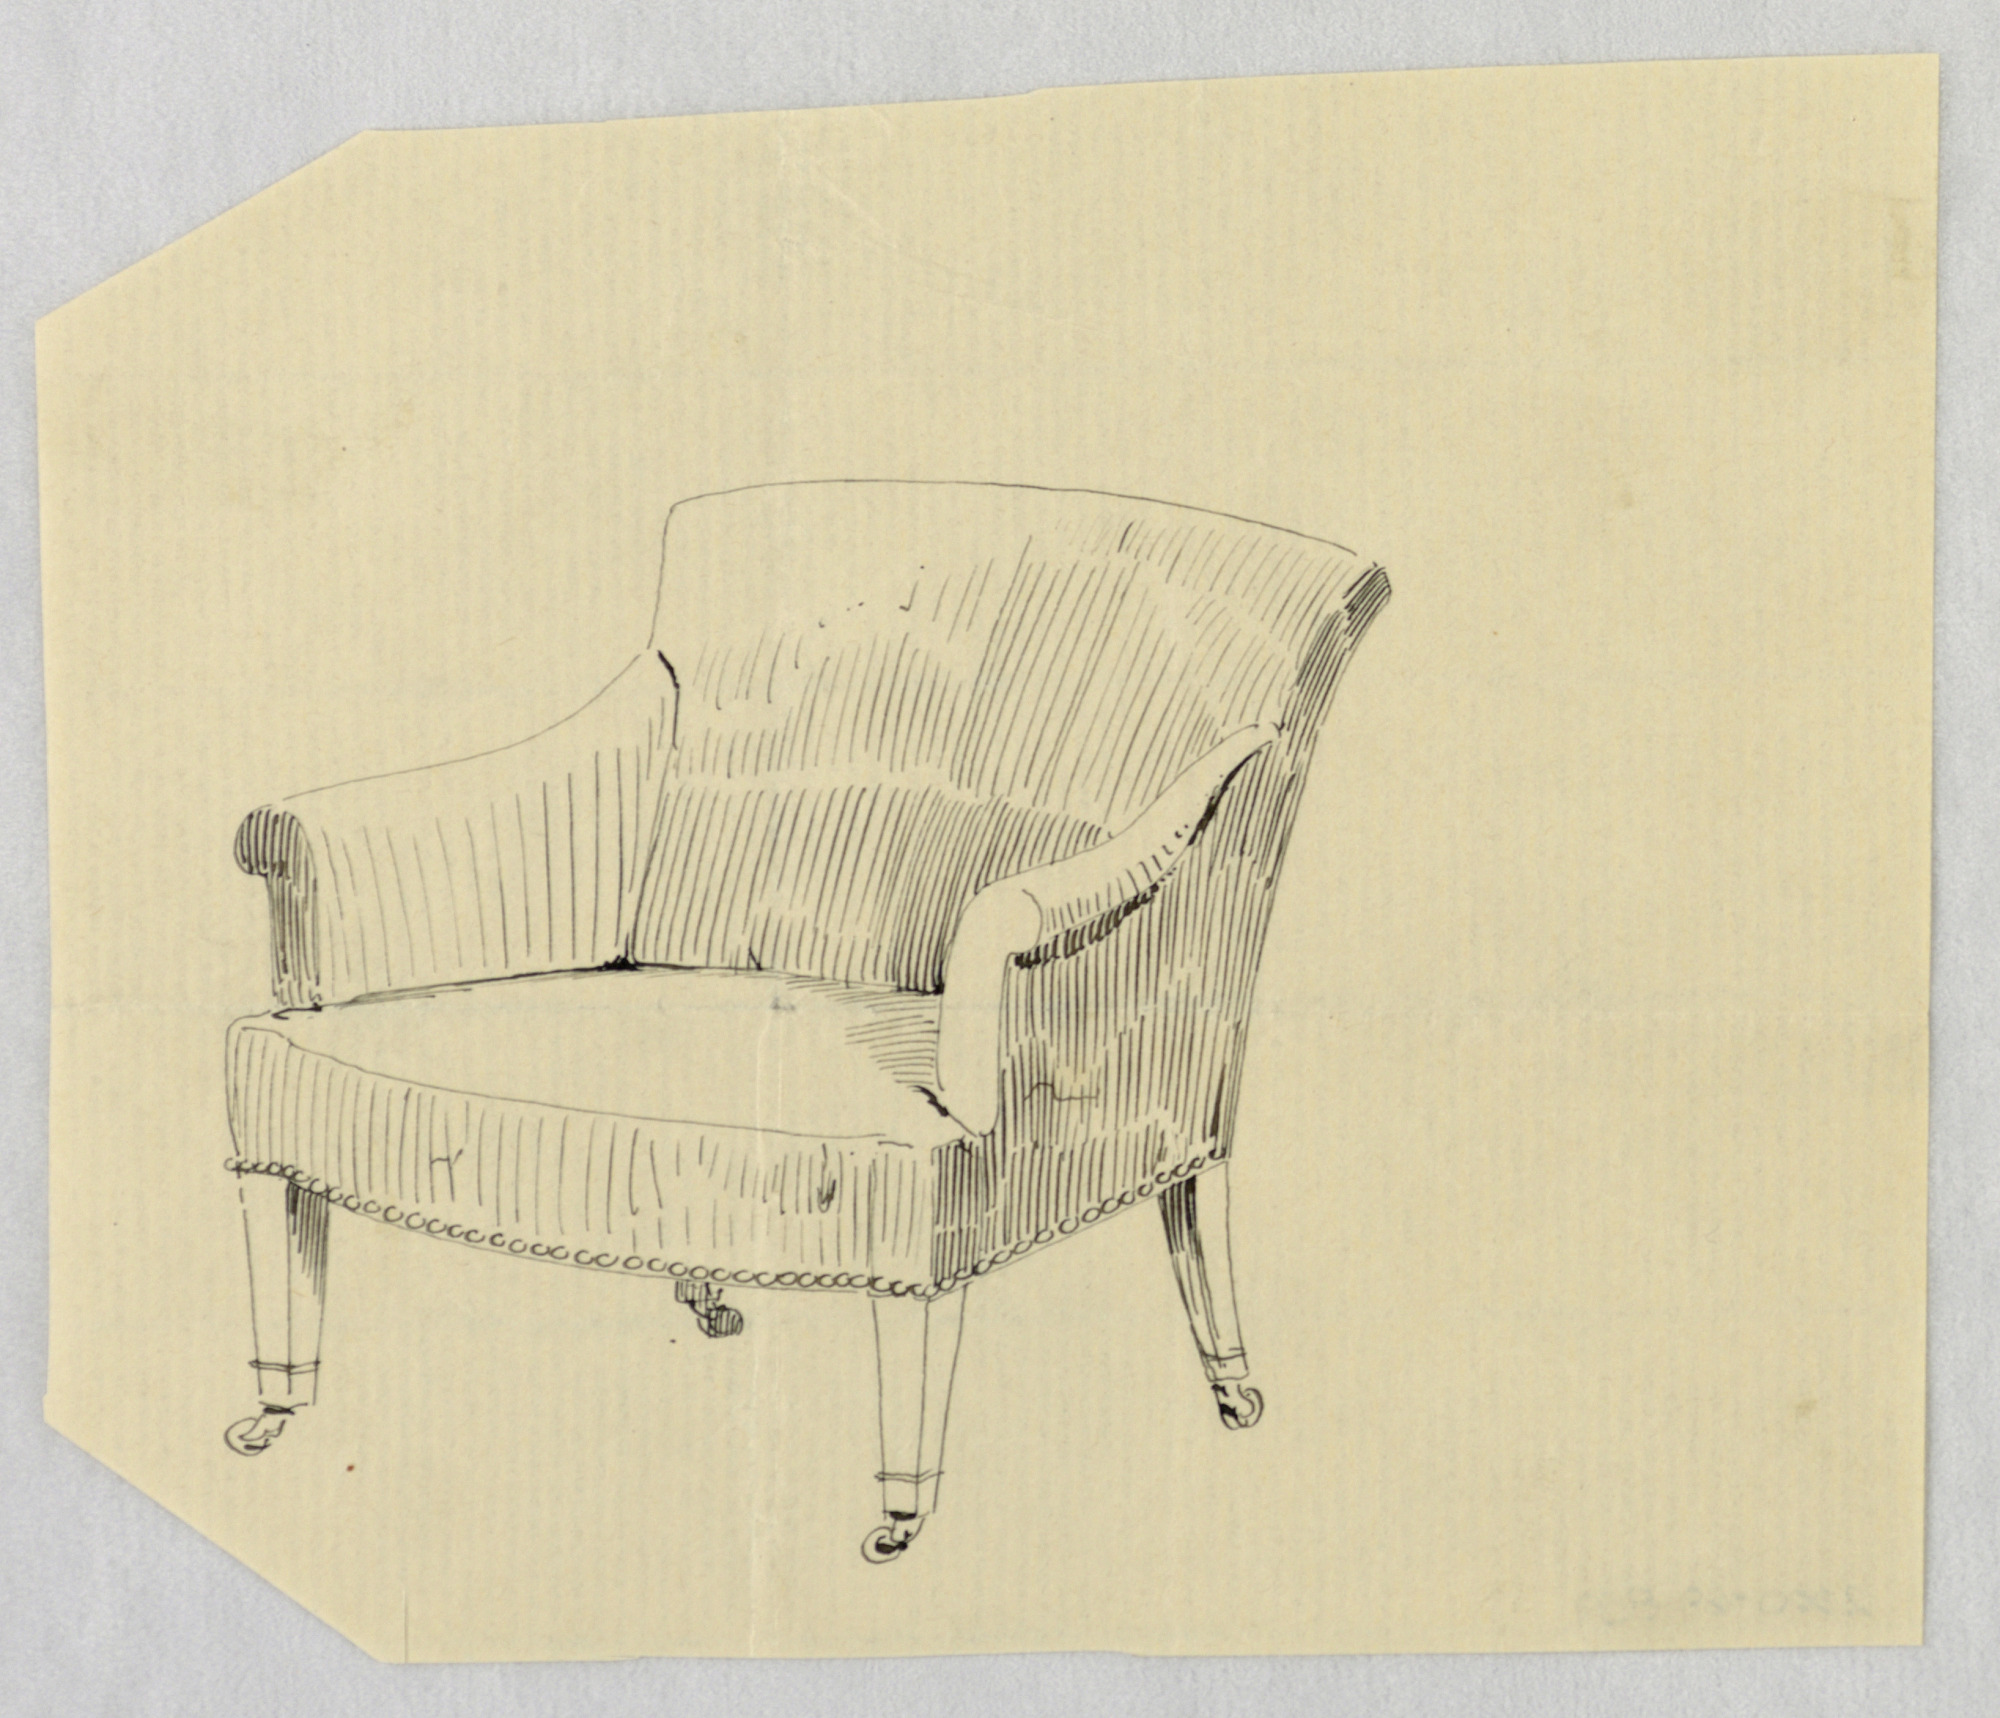 Design for Stuffed Chair, Rocker, and Arm Chair (easy chair)